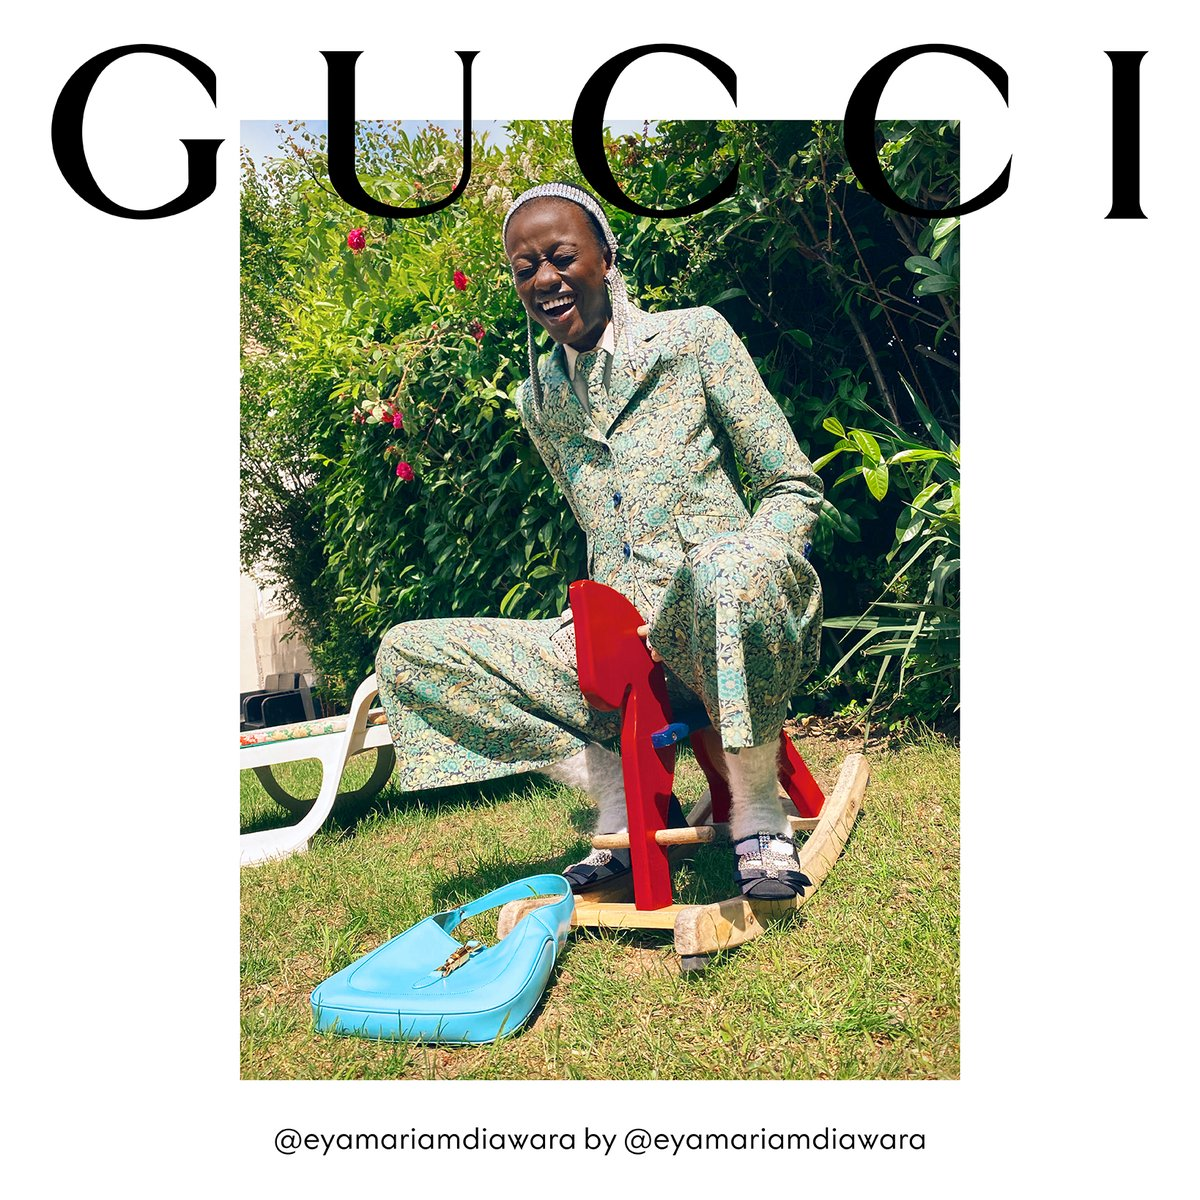 Forging a campaign from a different point of view, where the clothes travel to the houses of the cast, #GucciTheRitual is a lineup of images and videos created by the models. Seen here is #EyaMariamDiawara in a self-portrait with the #GucciJackie bag. https://t.co/Hq6G7EQZig https://t.co/PkZOFmLU5x